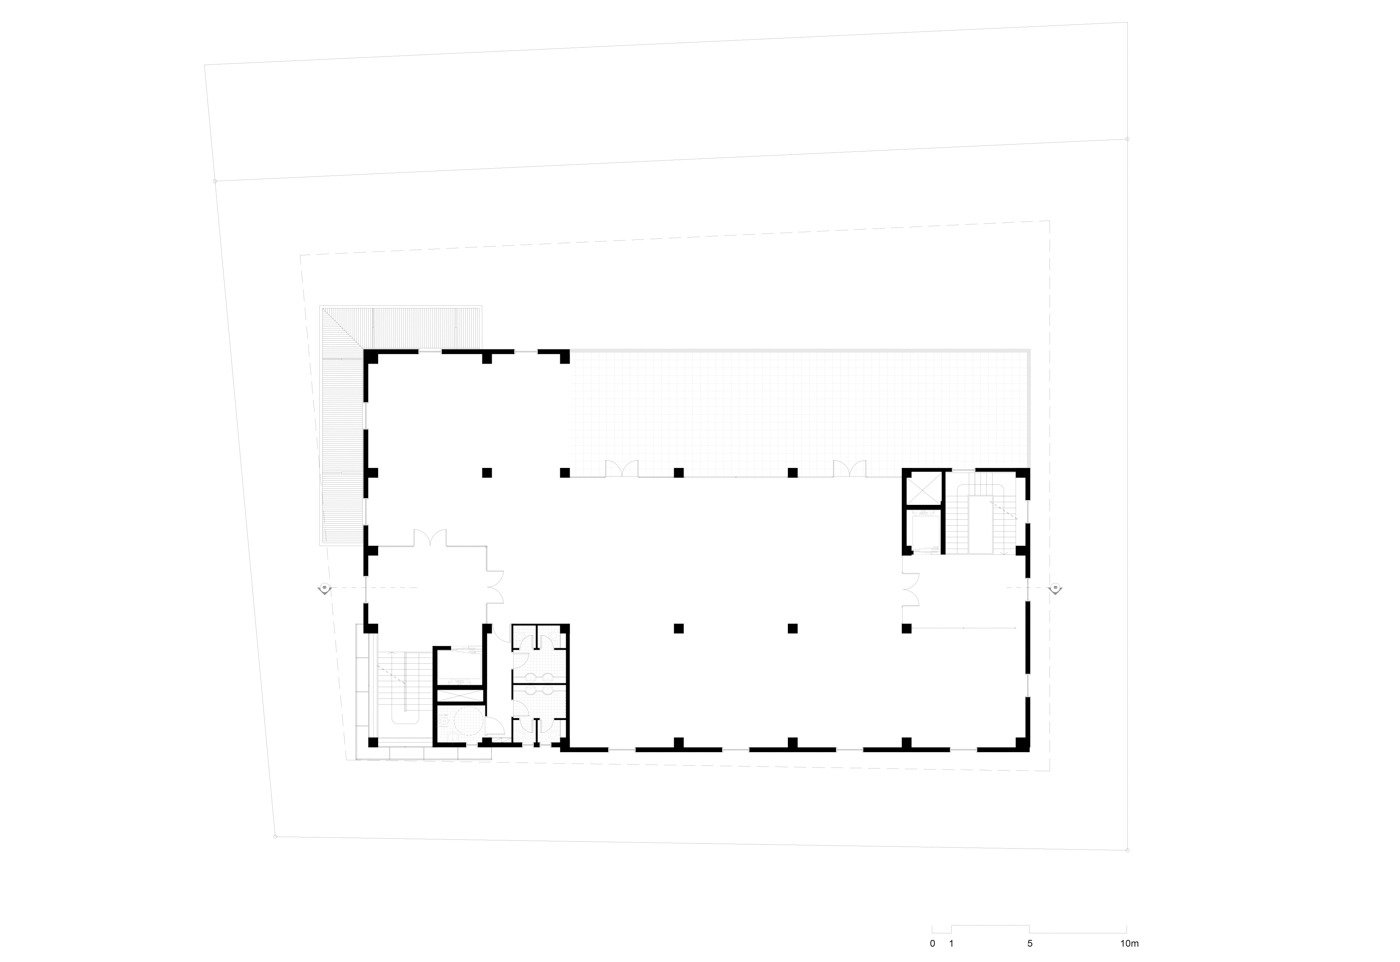 Floor Plan - Level 01